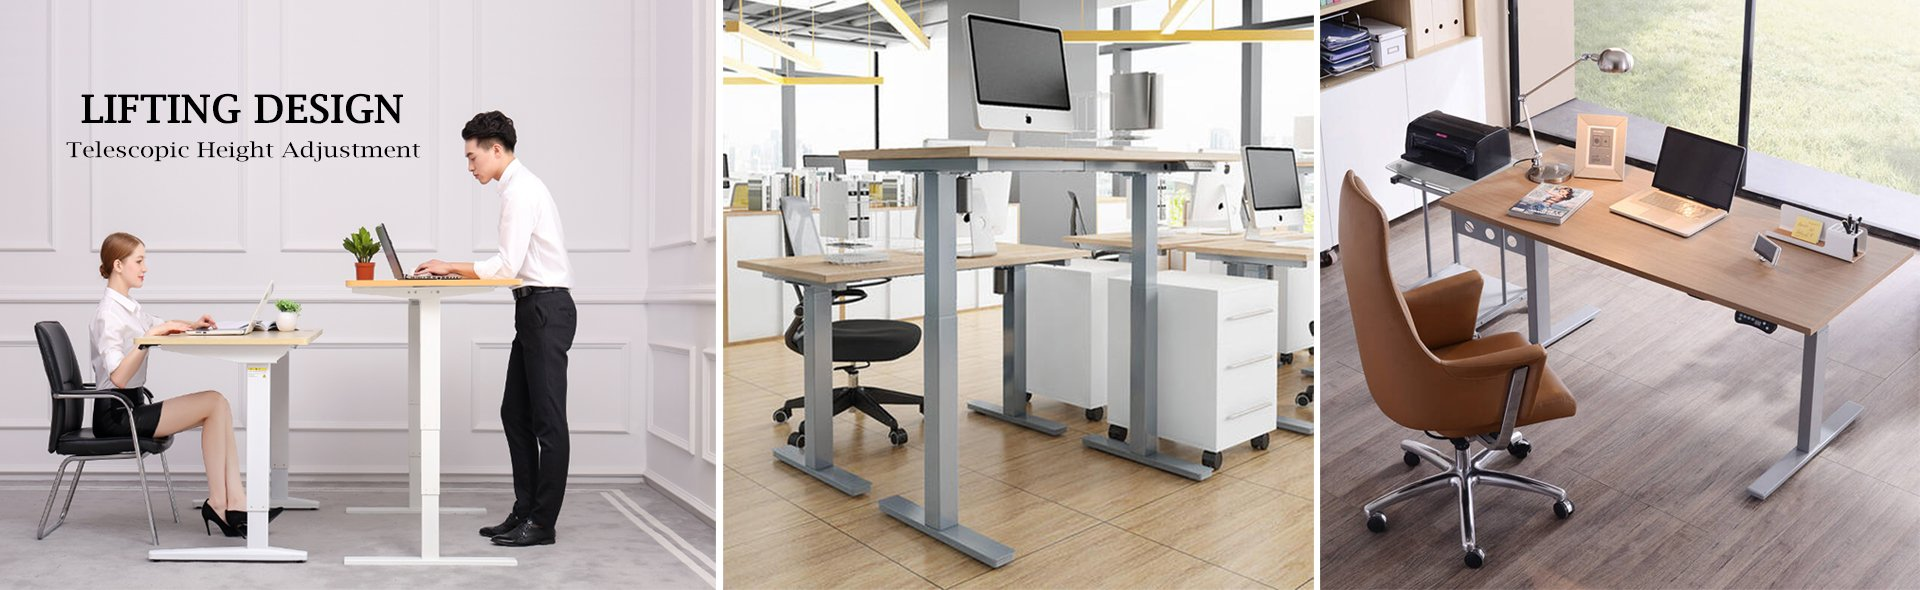 Lifting Design – Intelligent Height Adjustable Table